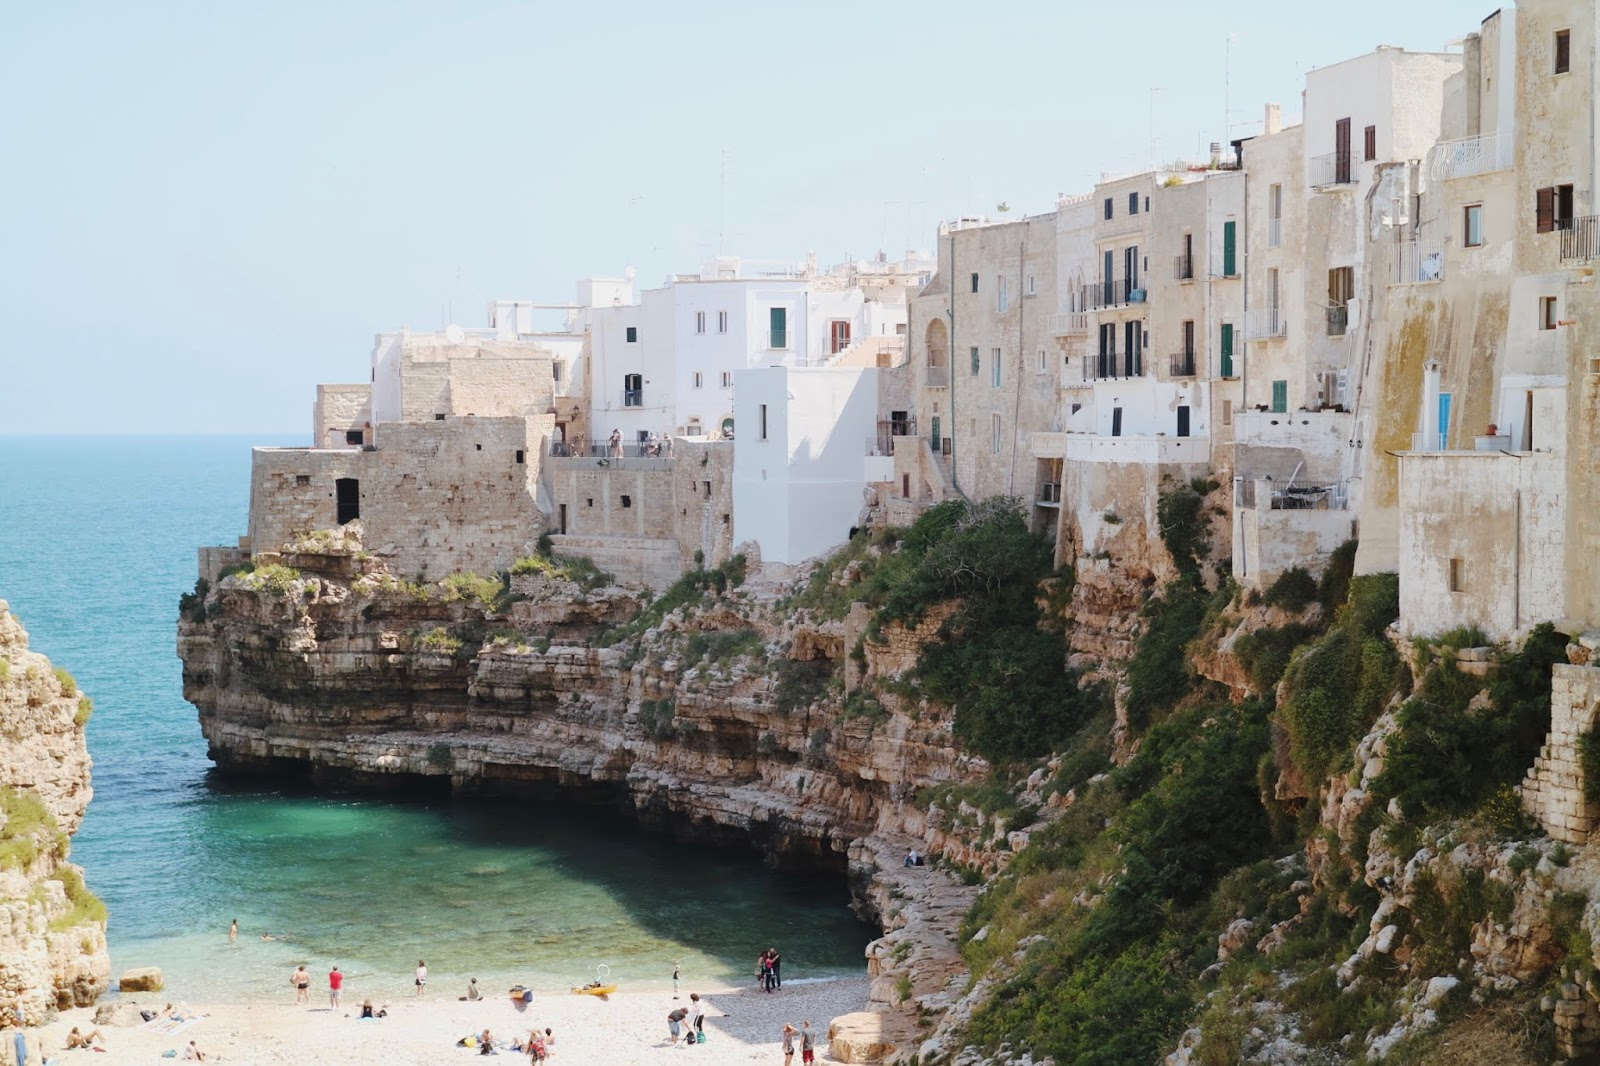 A Mini Guide to Polignano a Mare